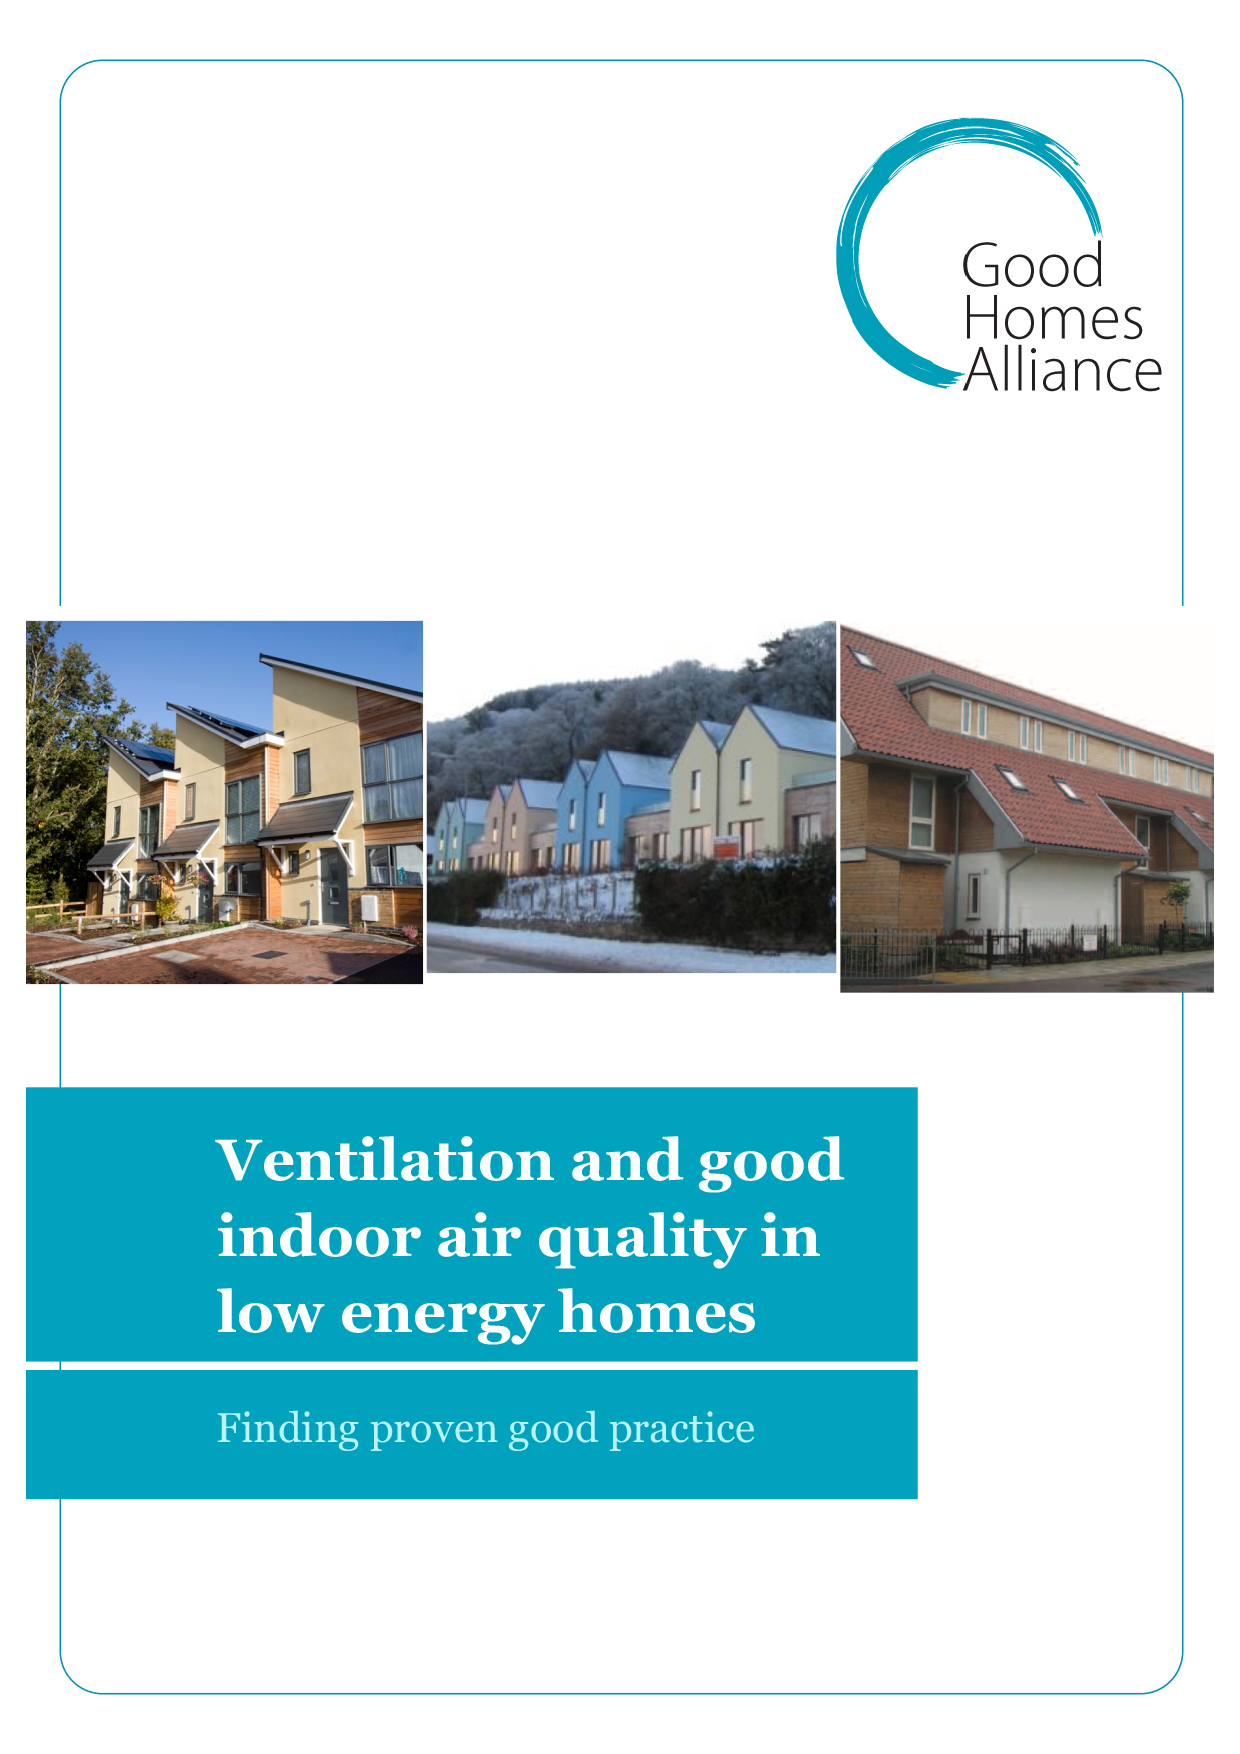 Ventilation and good indoor air quality in low energy homes